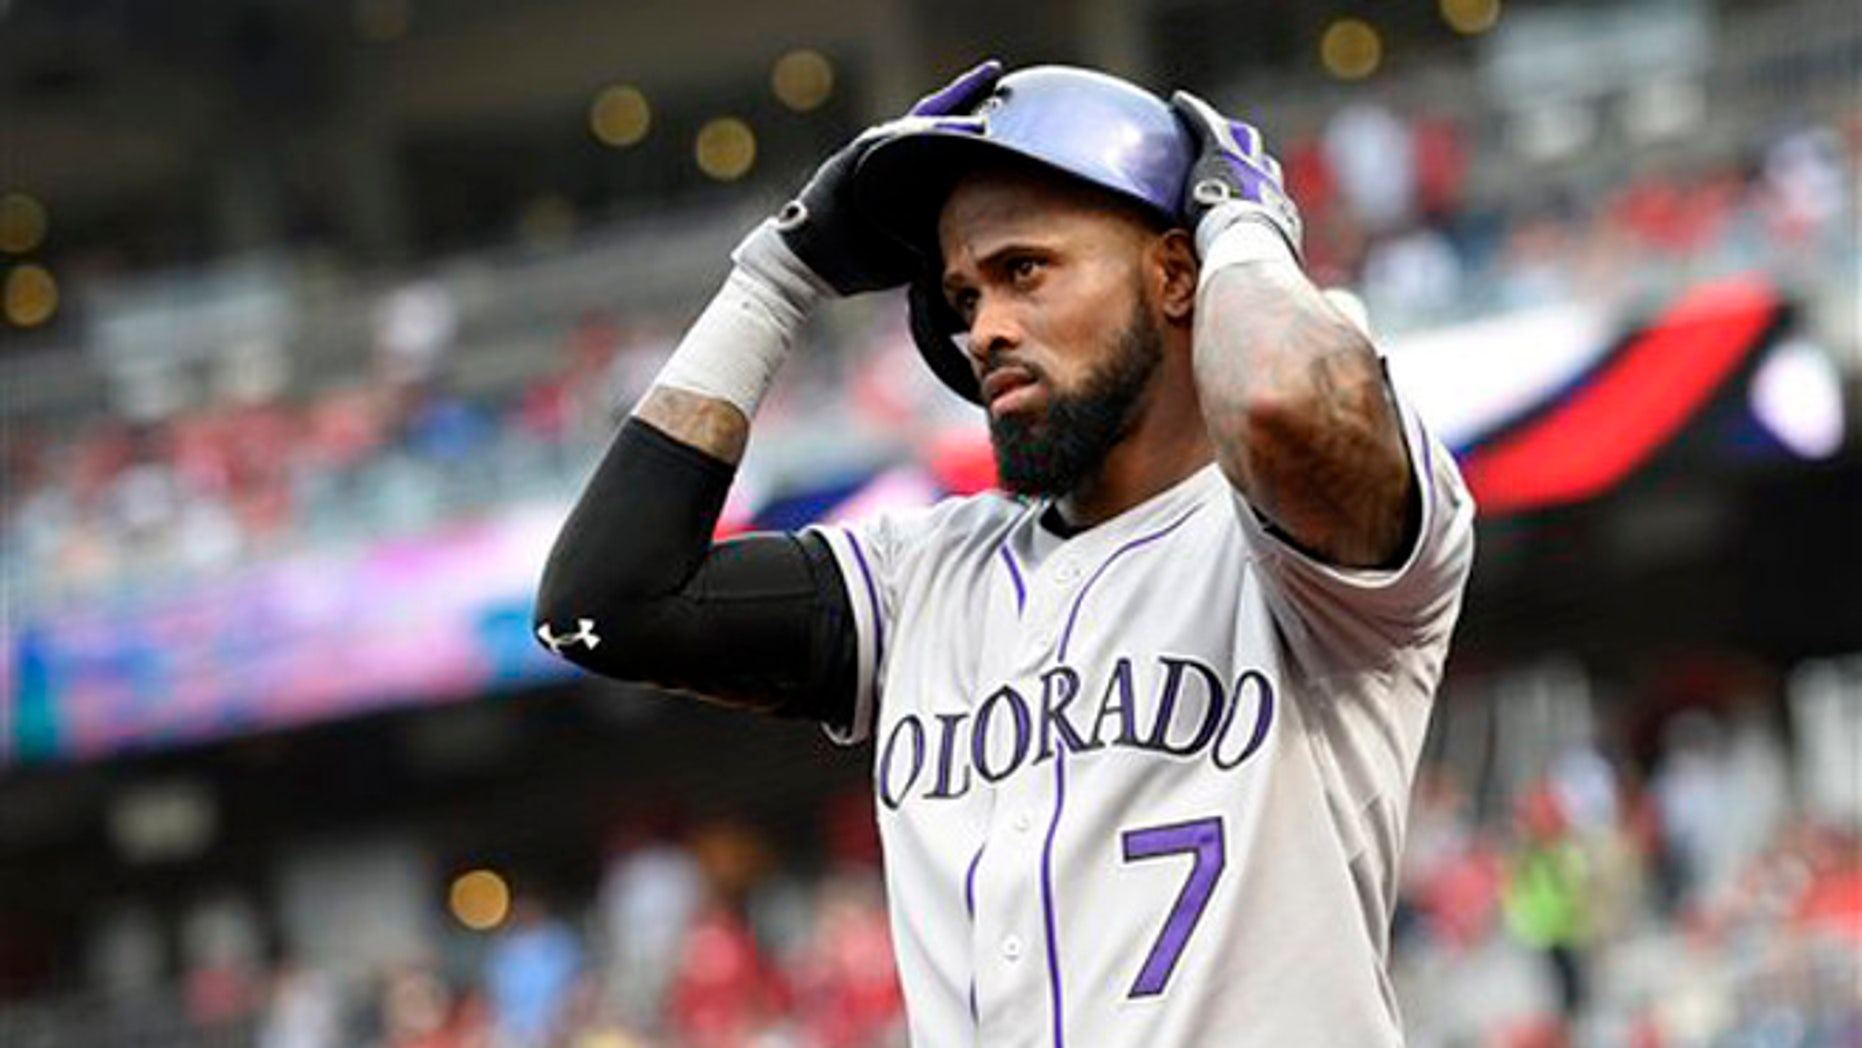 In this Aug. 7, 2015, file photo, Colorado Rockies shortstop Jose Reye adjusts his batting helmet before a baseball game against the Washington Nationals in Washington.